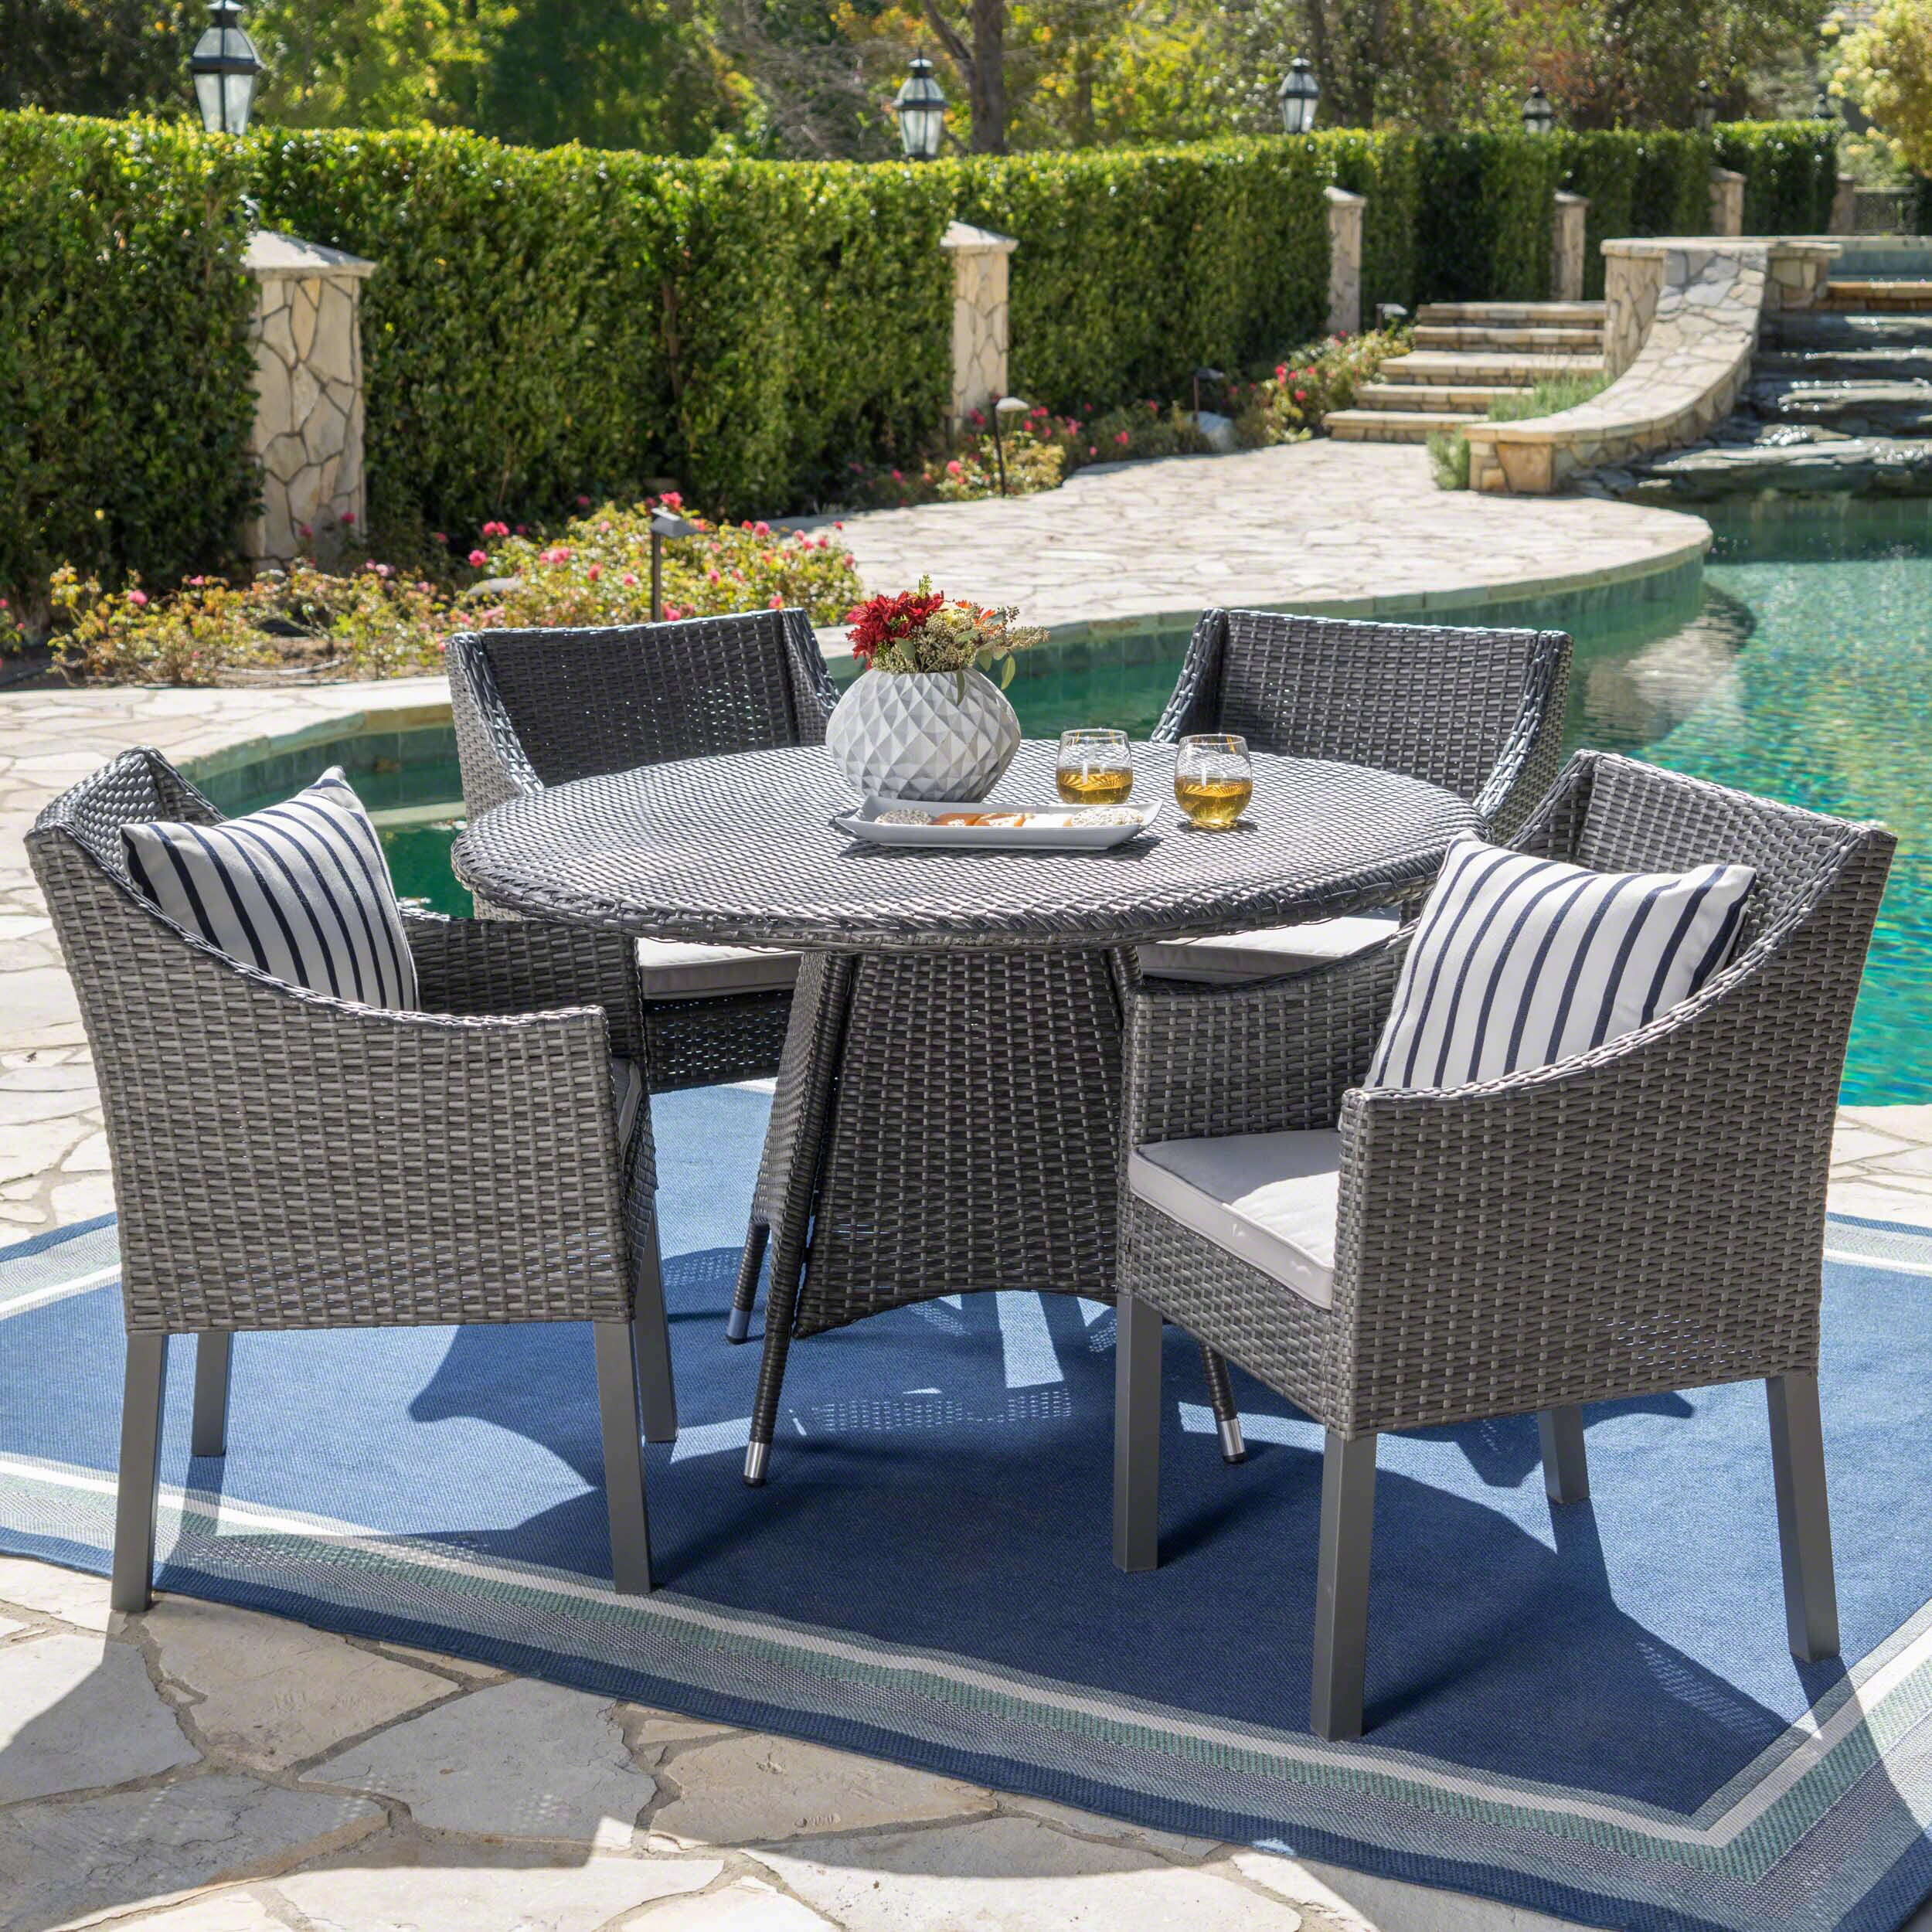 Round Patio Furniture Buy Round Outdoor Dining Sets Online At Overstock Our Best Patio